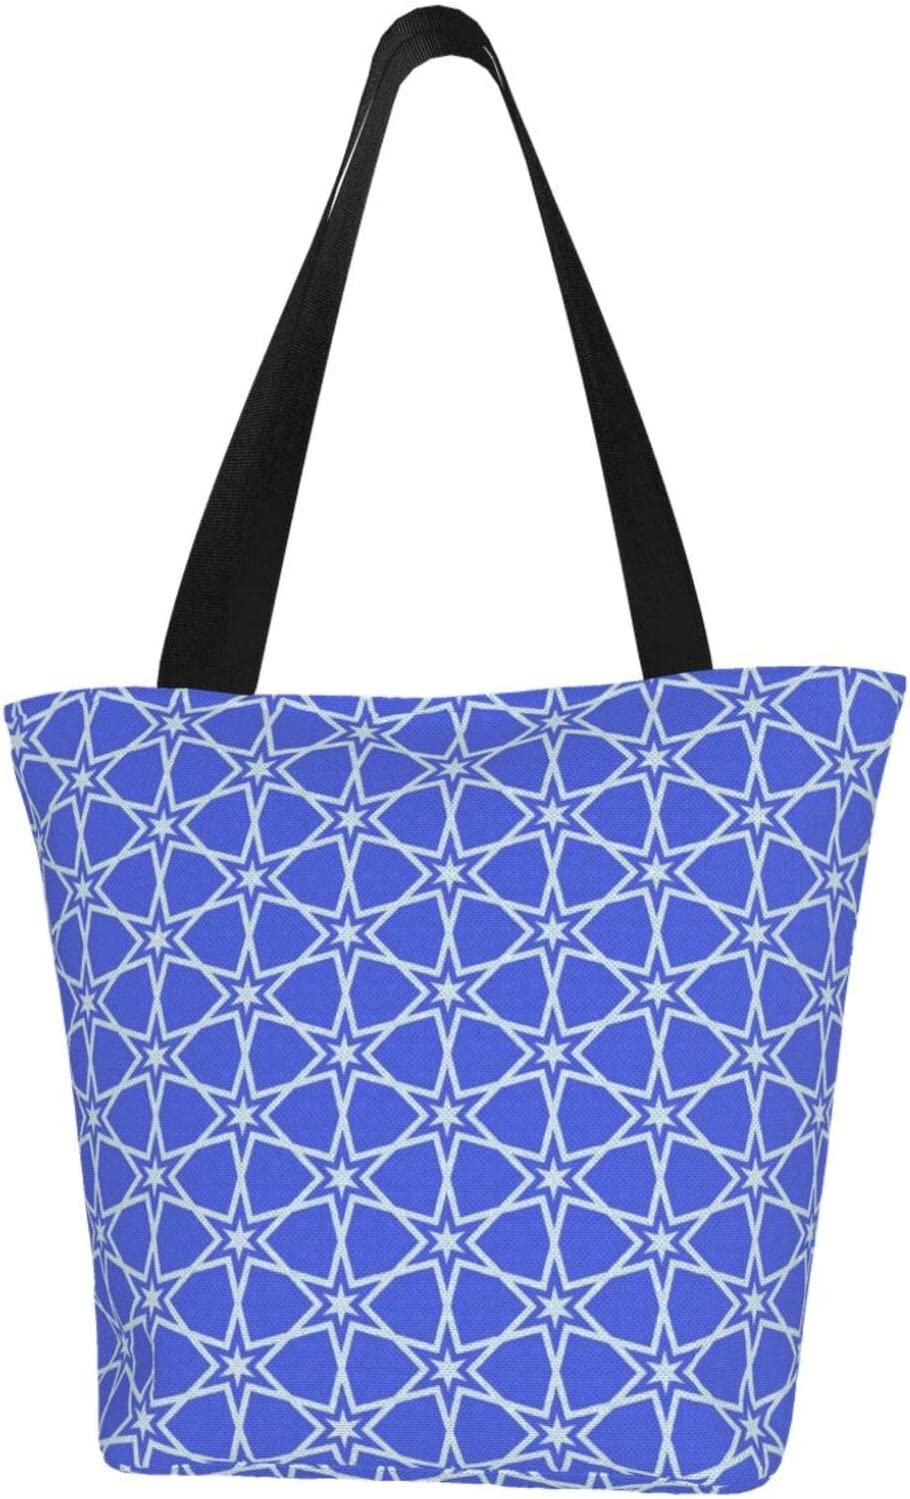 AKLID Cheap super special Ranking TOP15 price Blue Star Radian Pattern Canva Large Extra Resistant Water